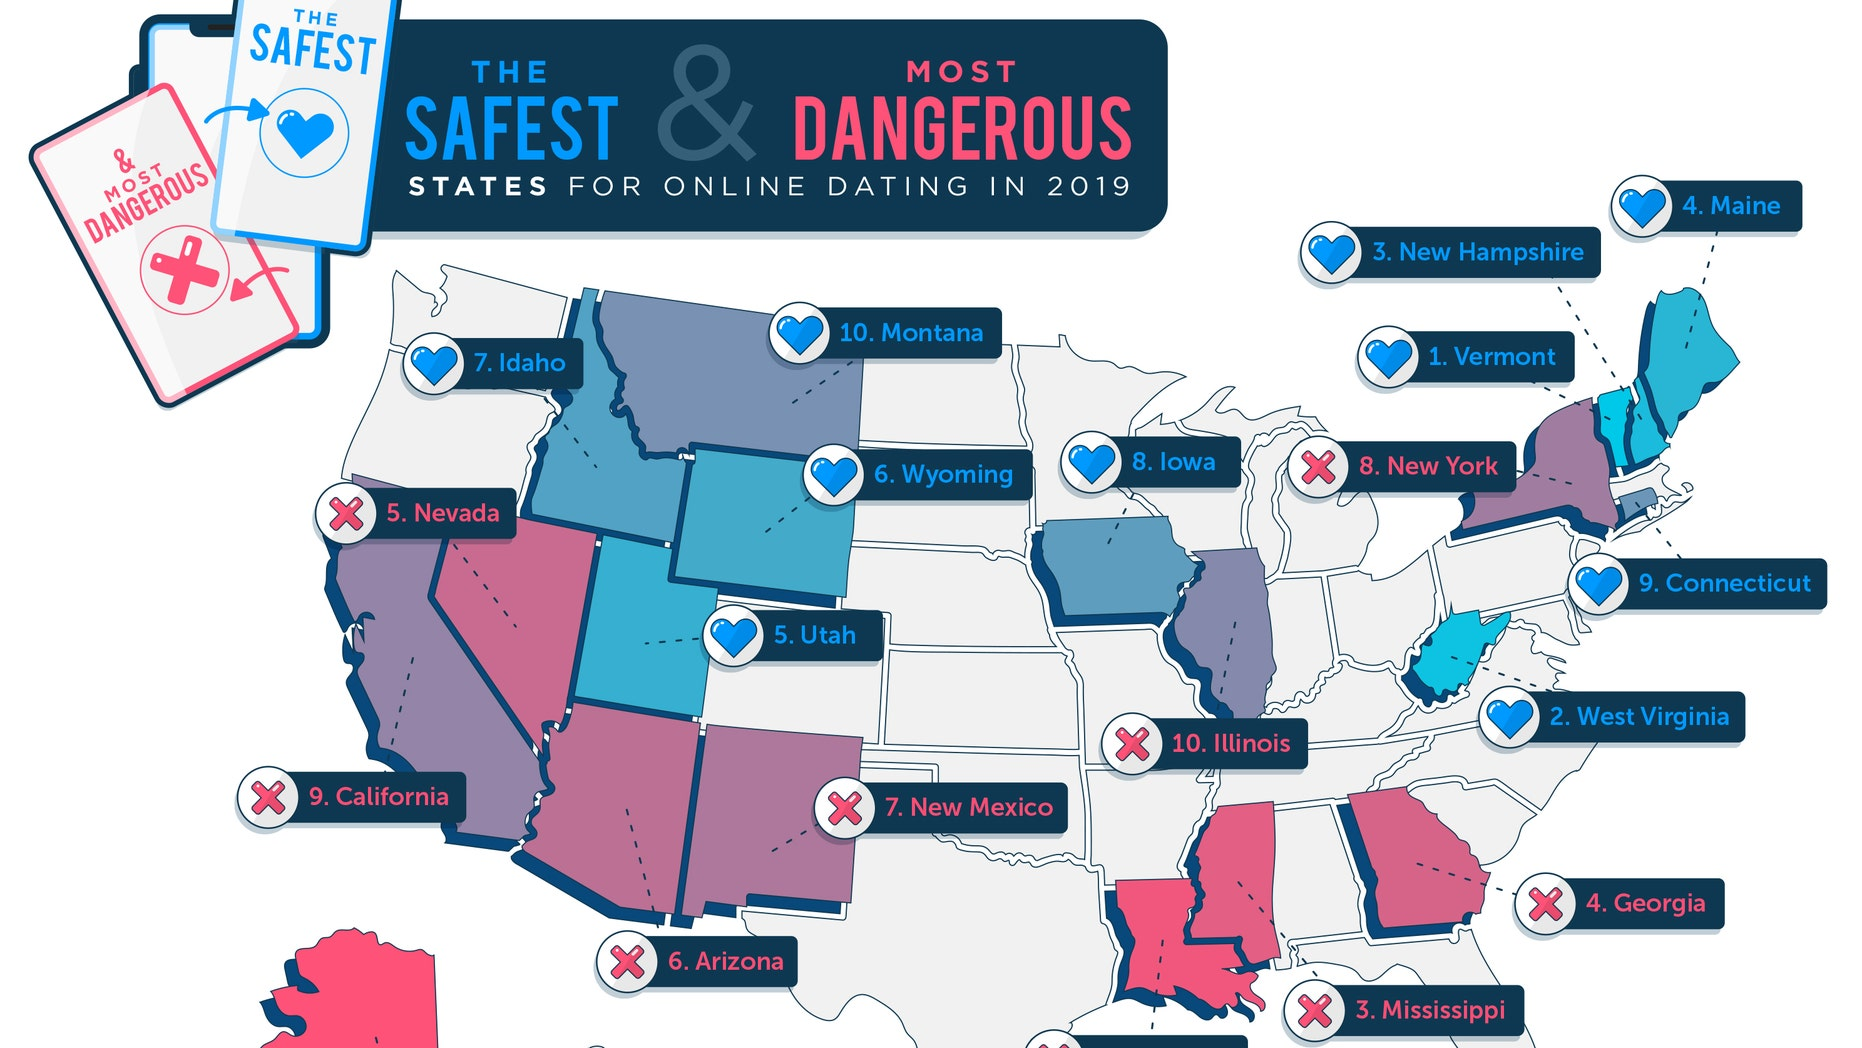 The online dating map of the U.S. (HighSpeedInternet.com)